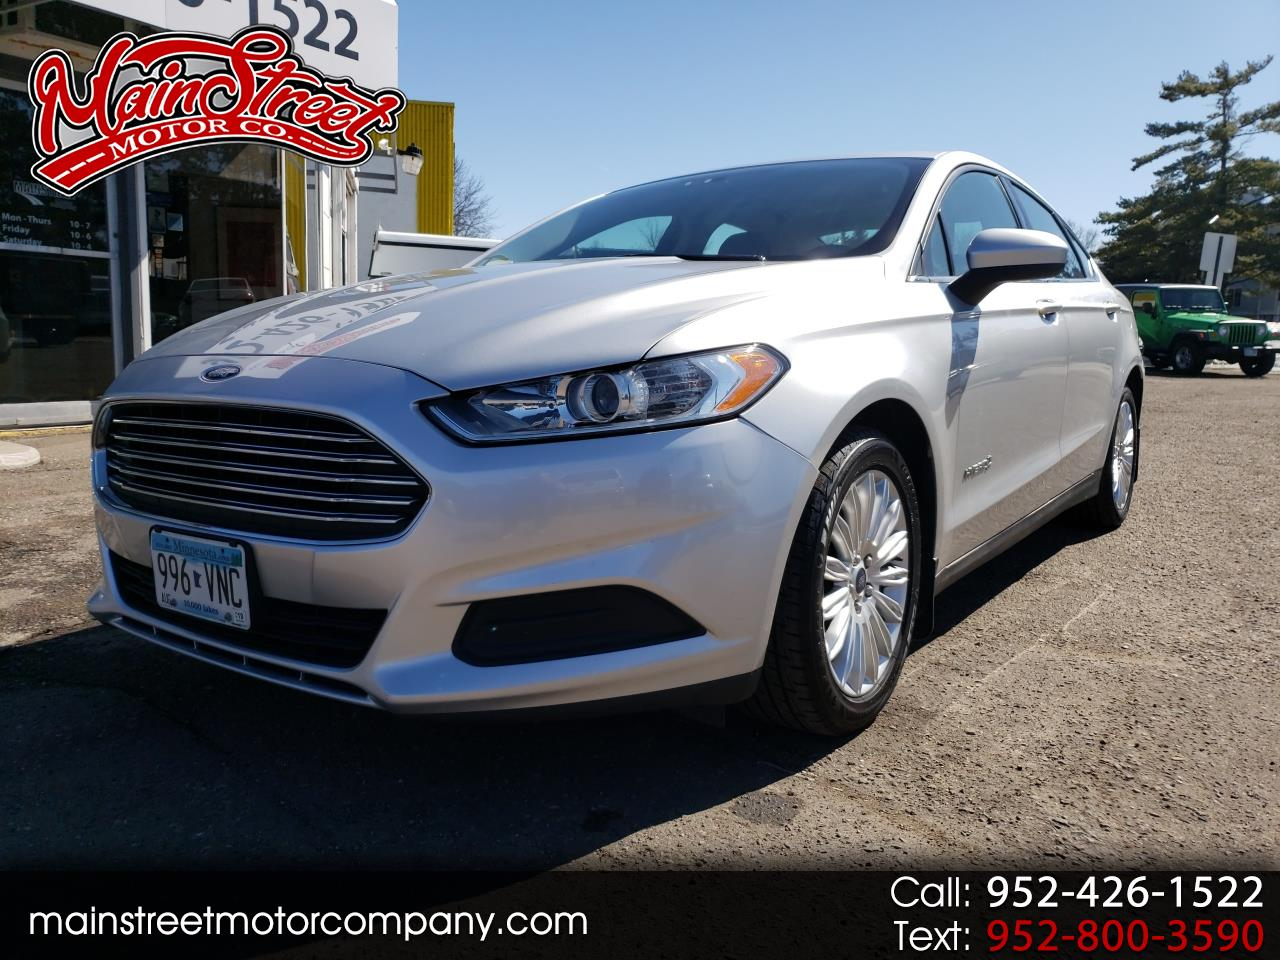 2014 Ford Fusion 4dr Sdn S Hybrid FWD